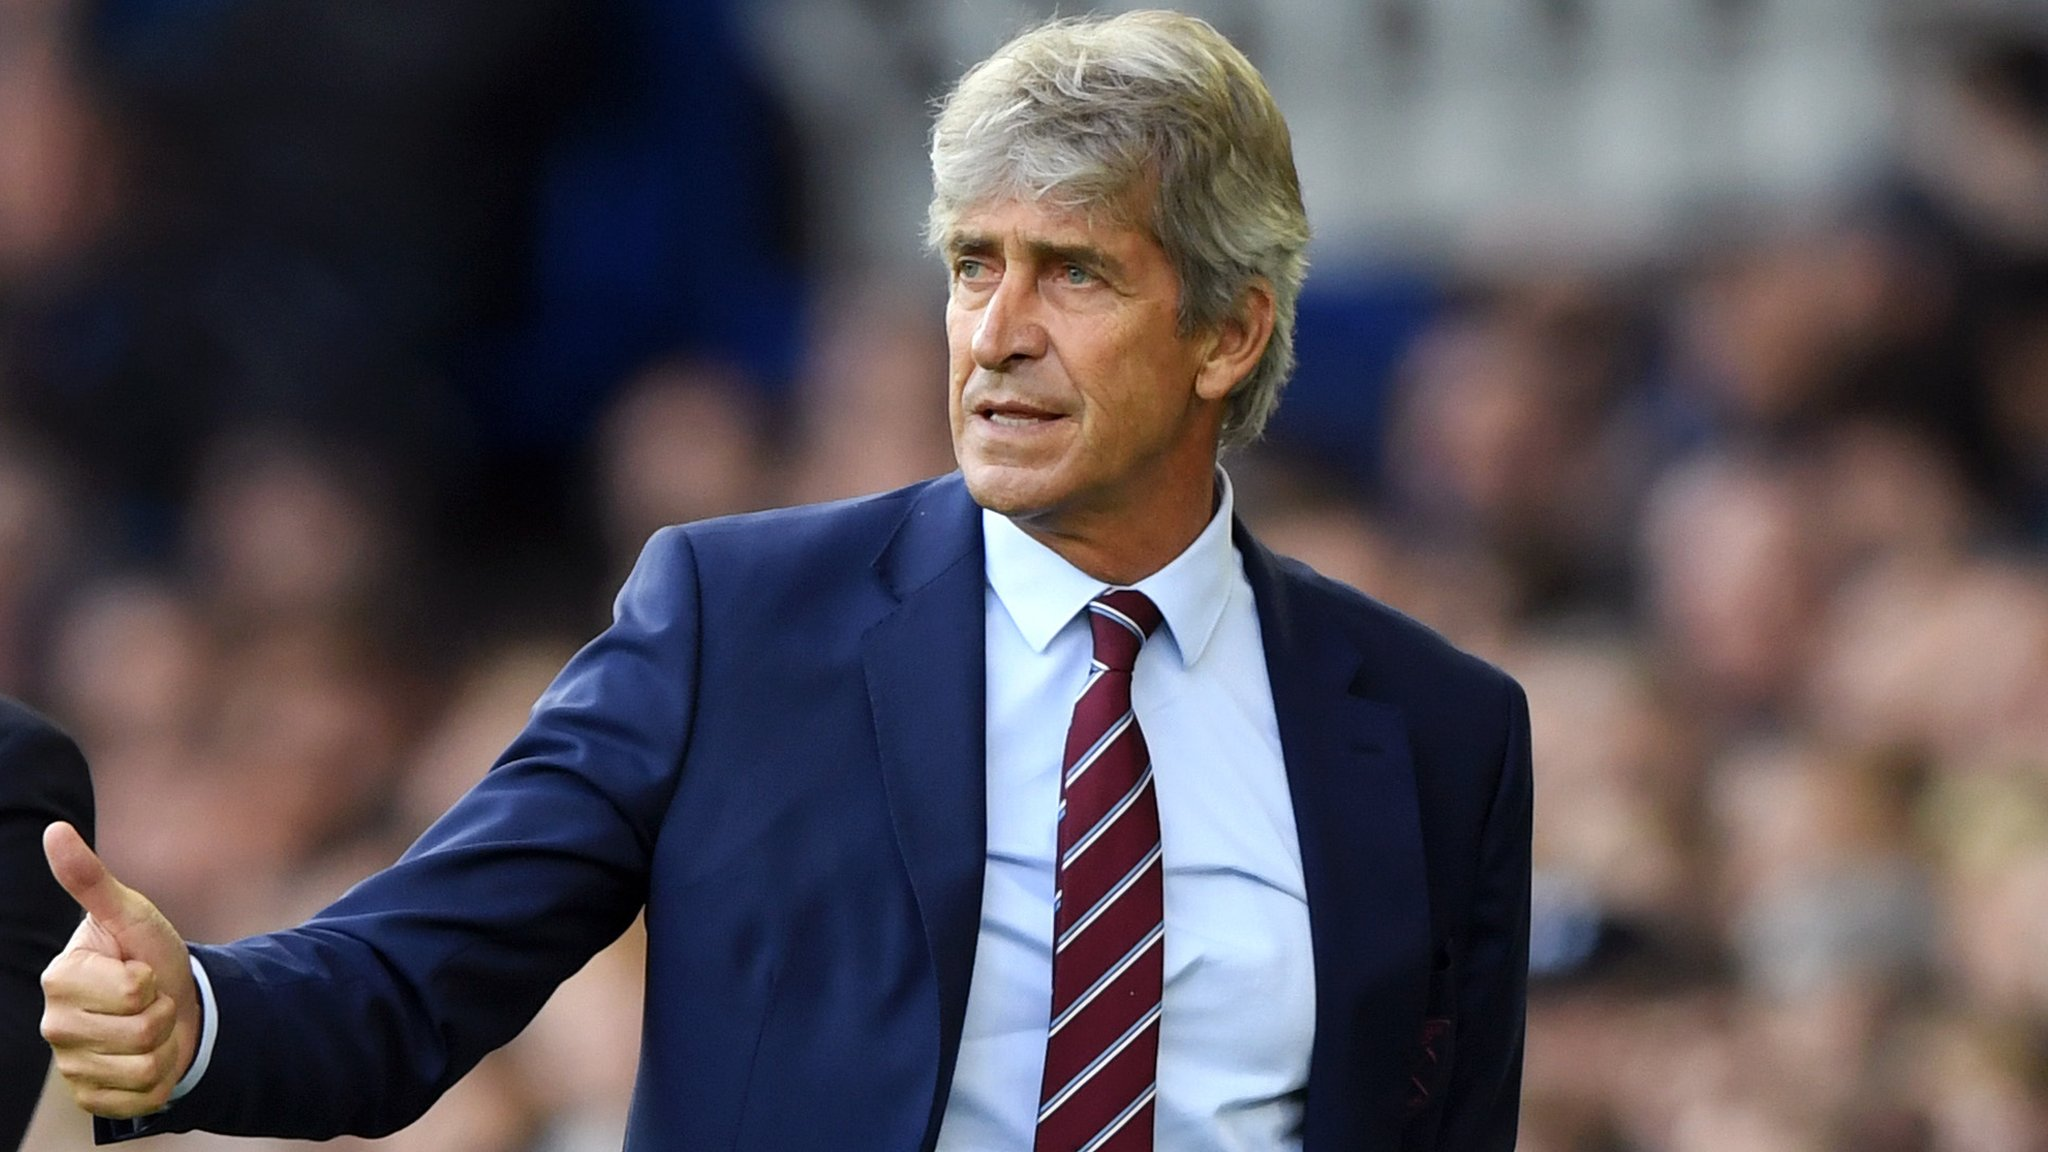 Everton 1-3 West Ham: Hammers win best birthday gift - Manuel Pellegrini